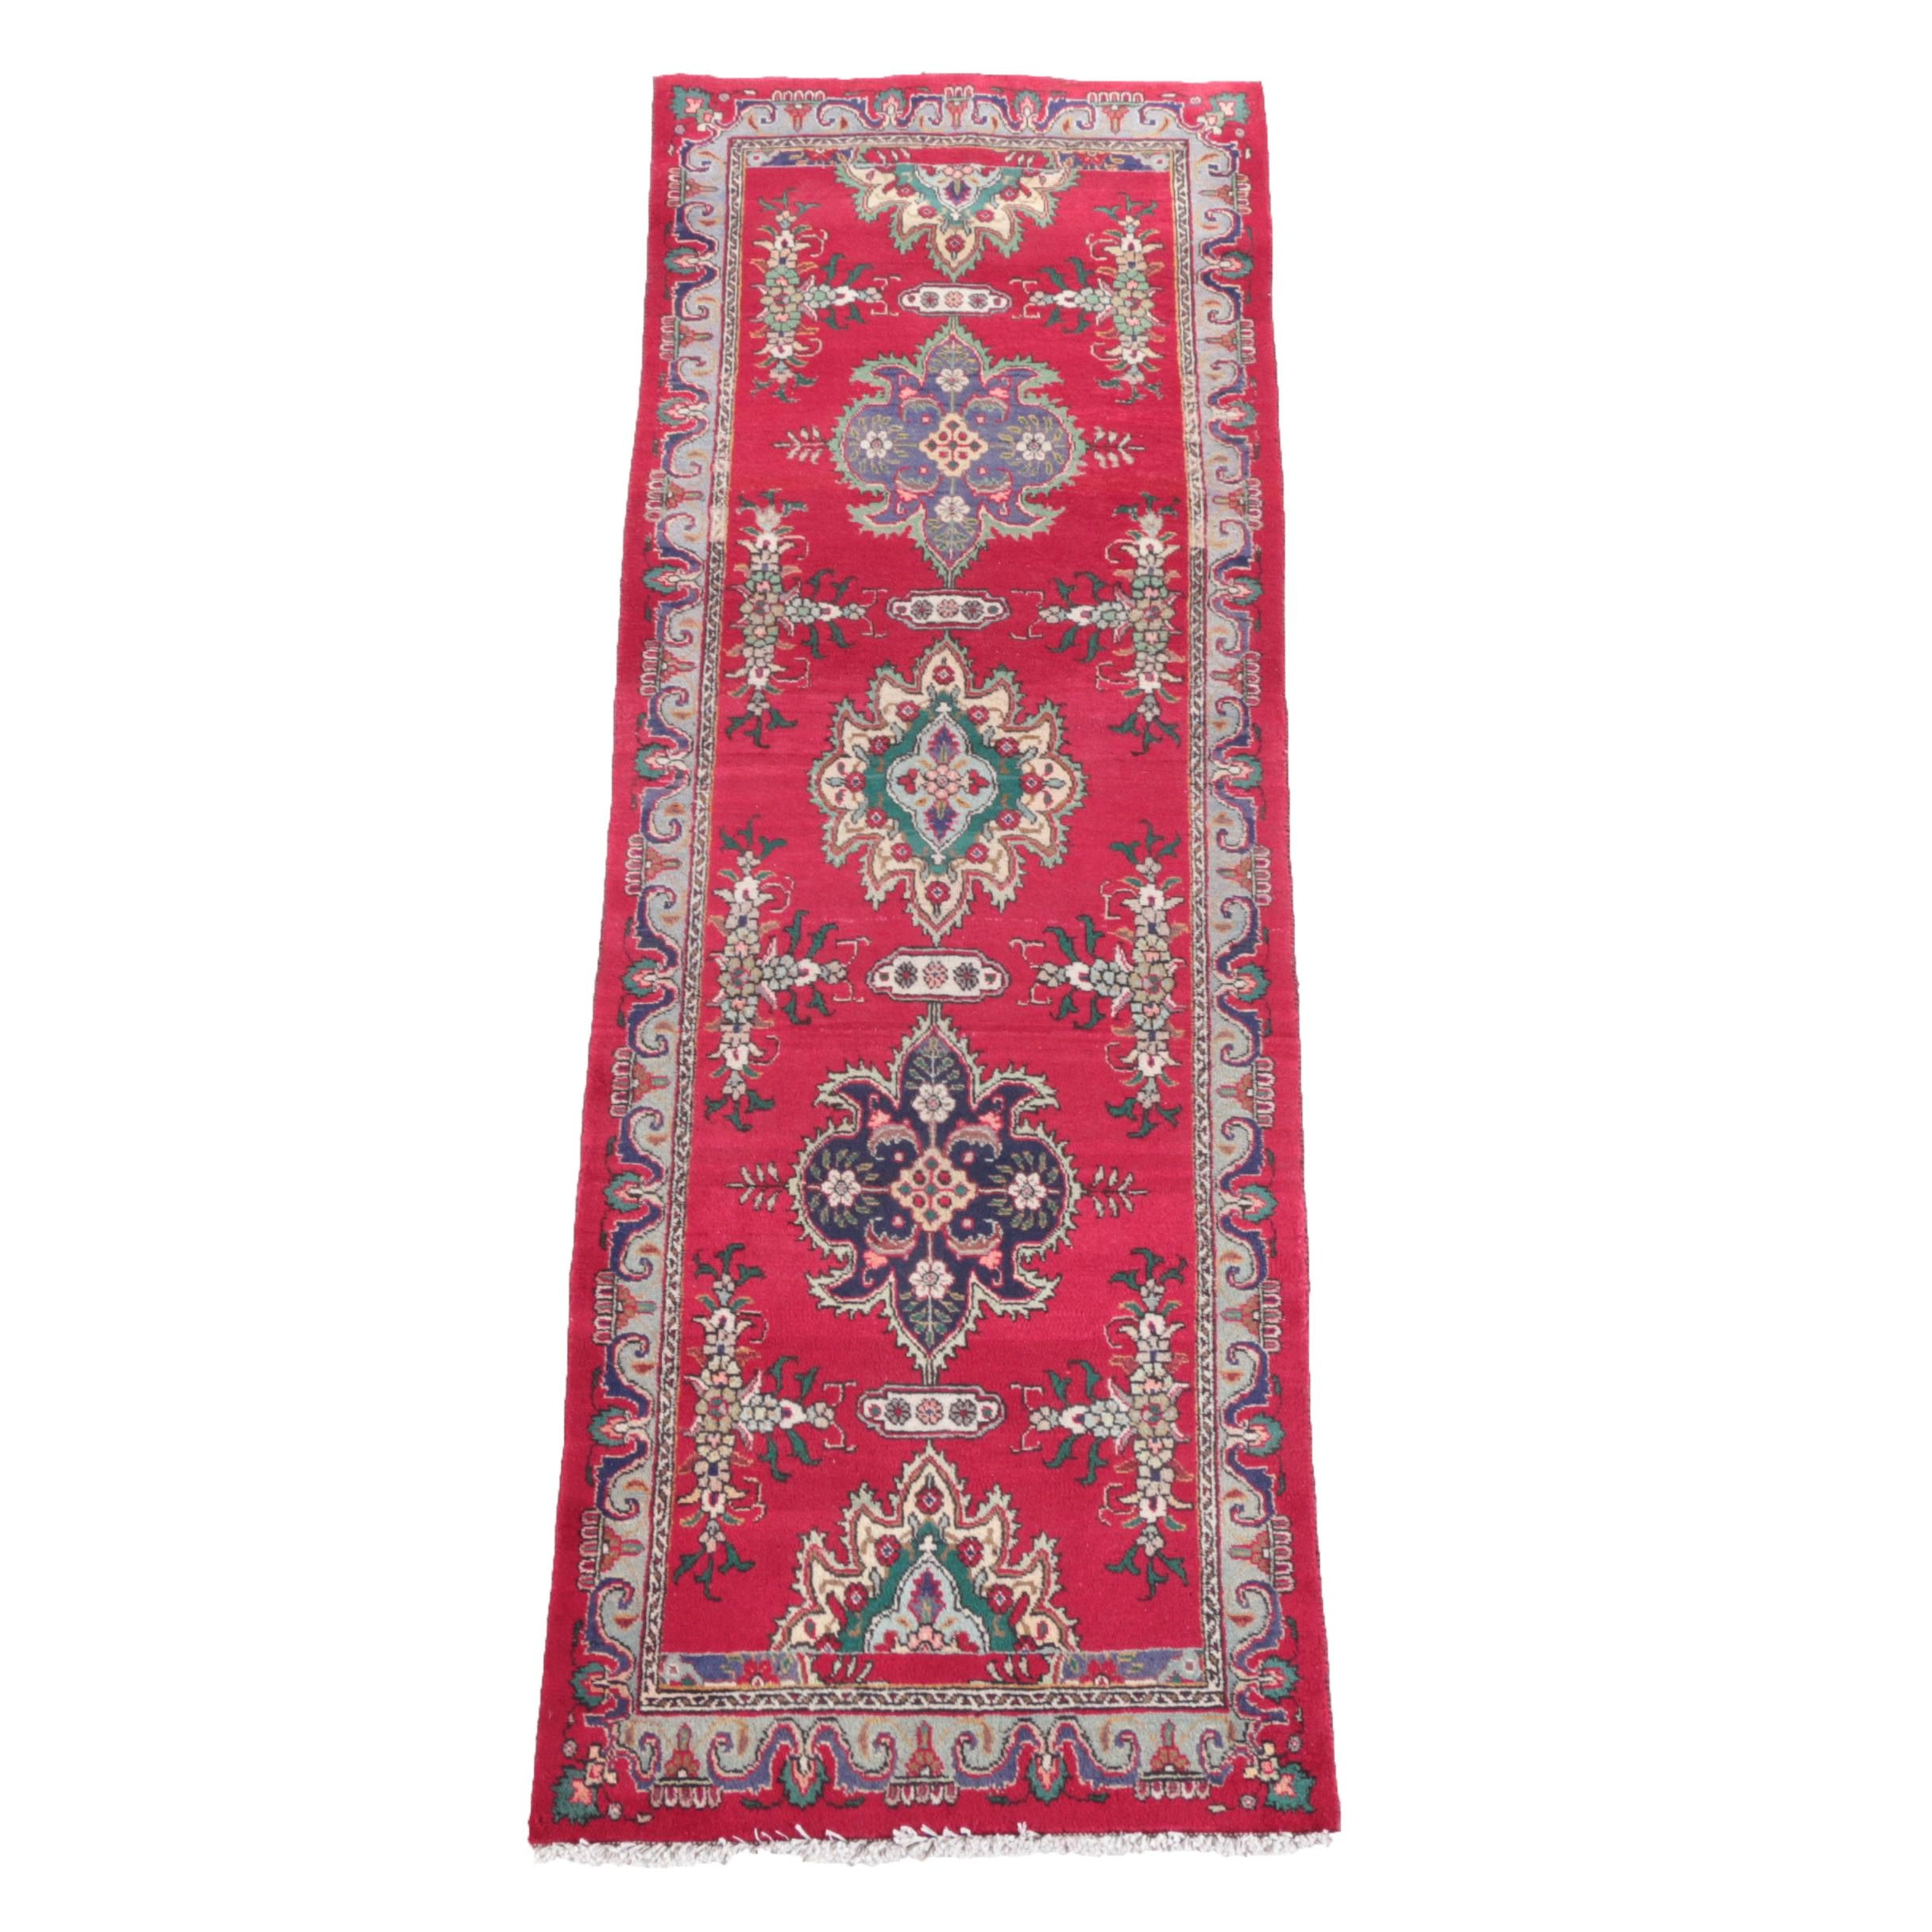 Hand-Knotted Persian Wool Long Rug